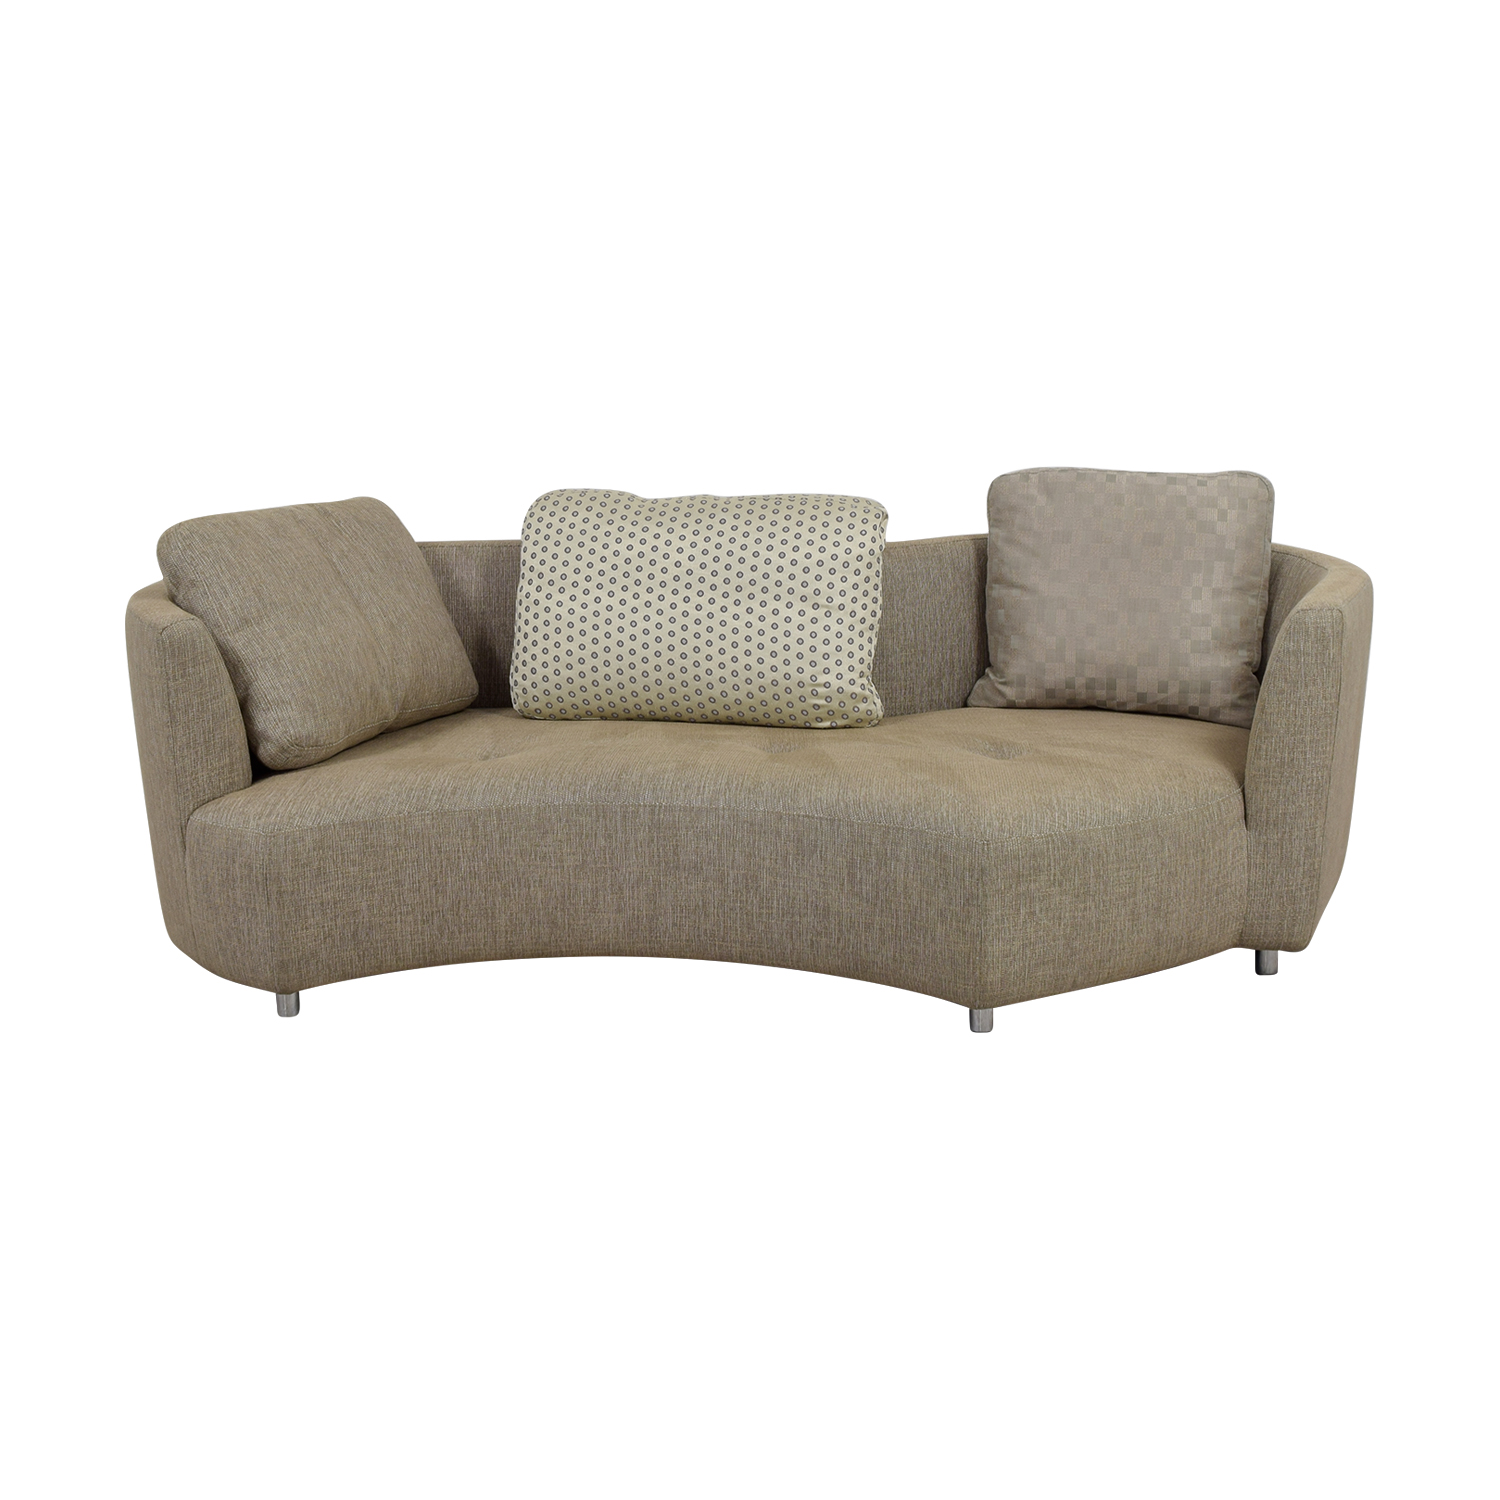 Roche Bobois Three-Seater Tan Tweed Sofa Roche Bobois